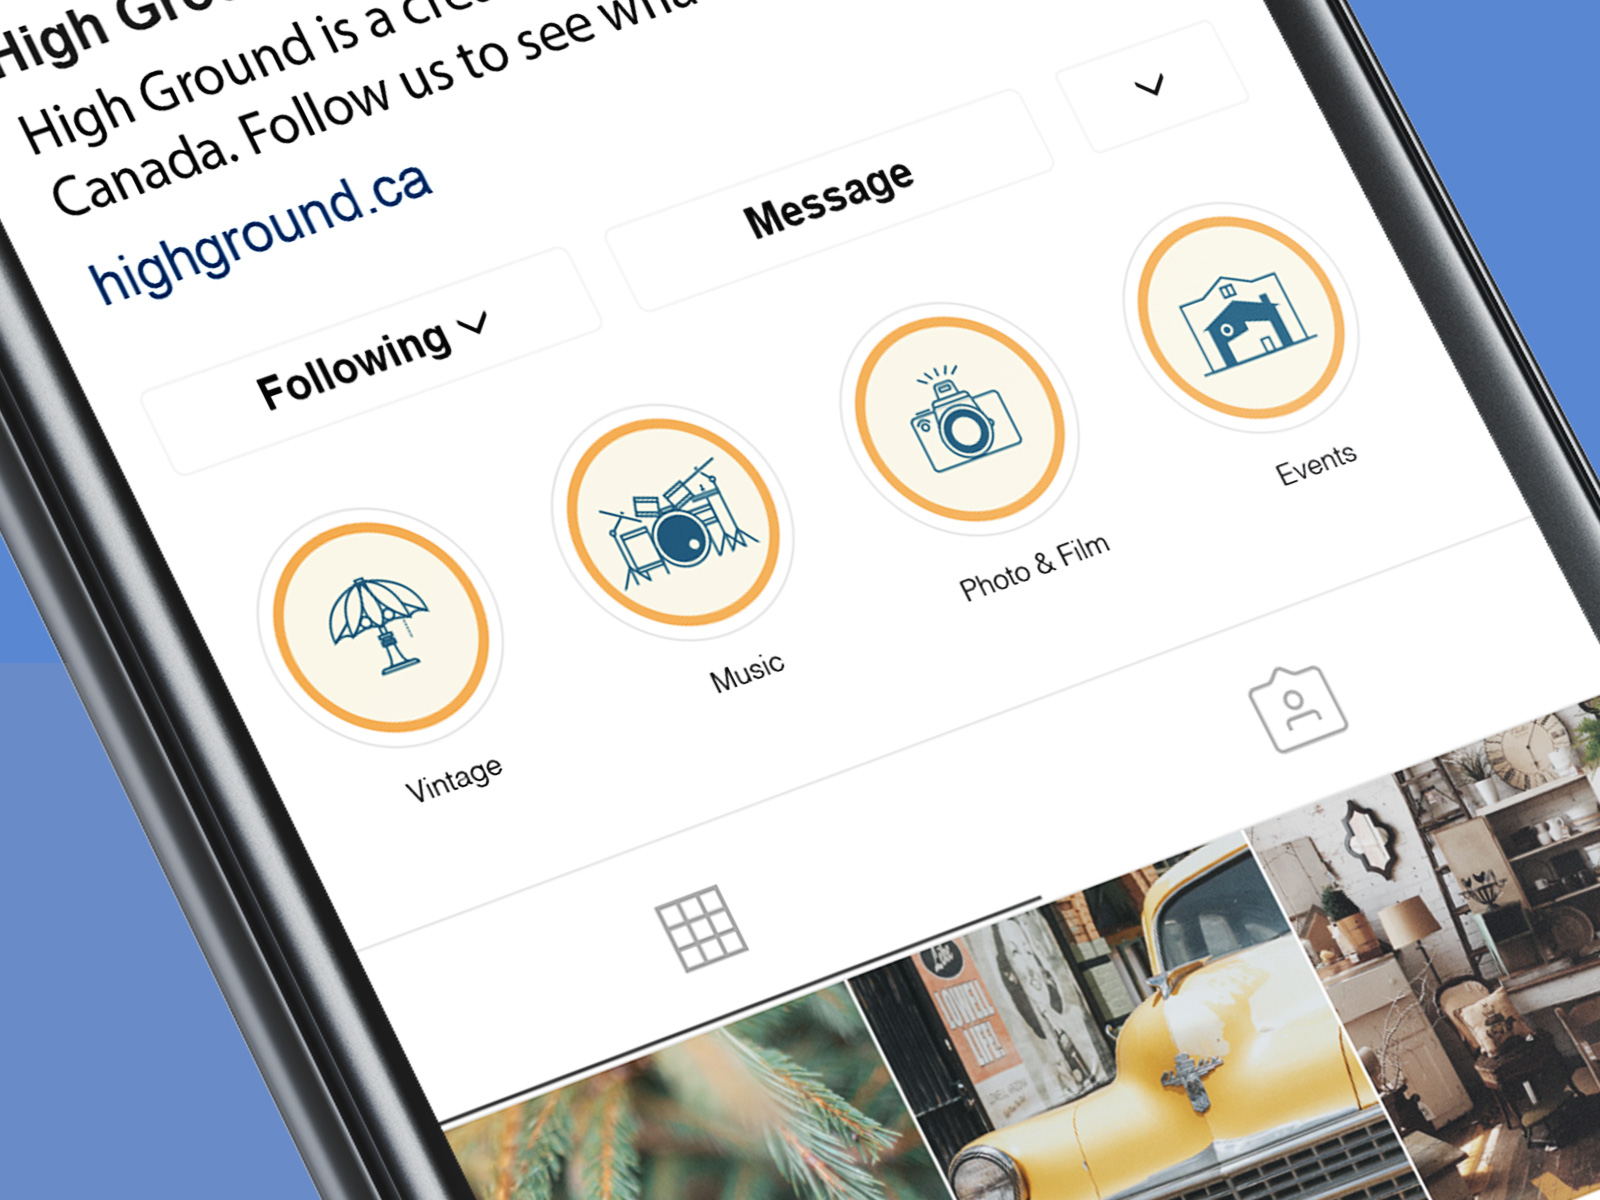 instagram Icon Designs for High Ground Brand Identity Design Project